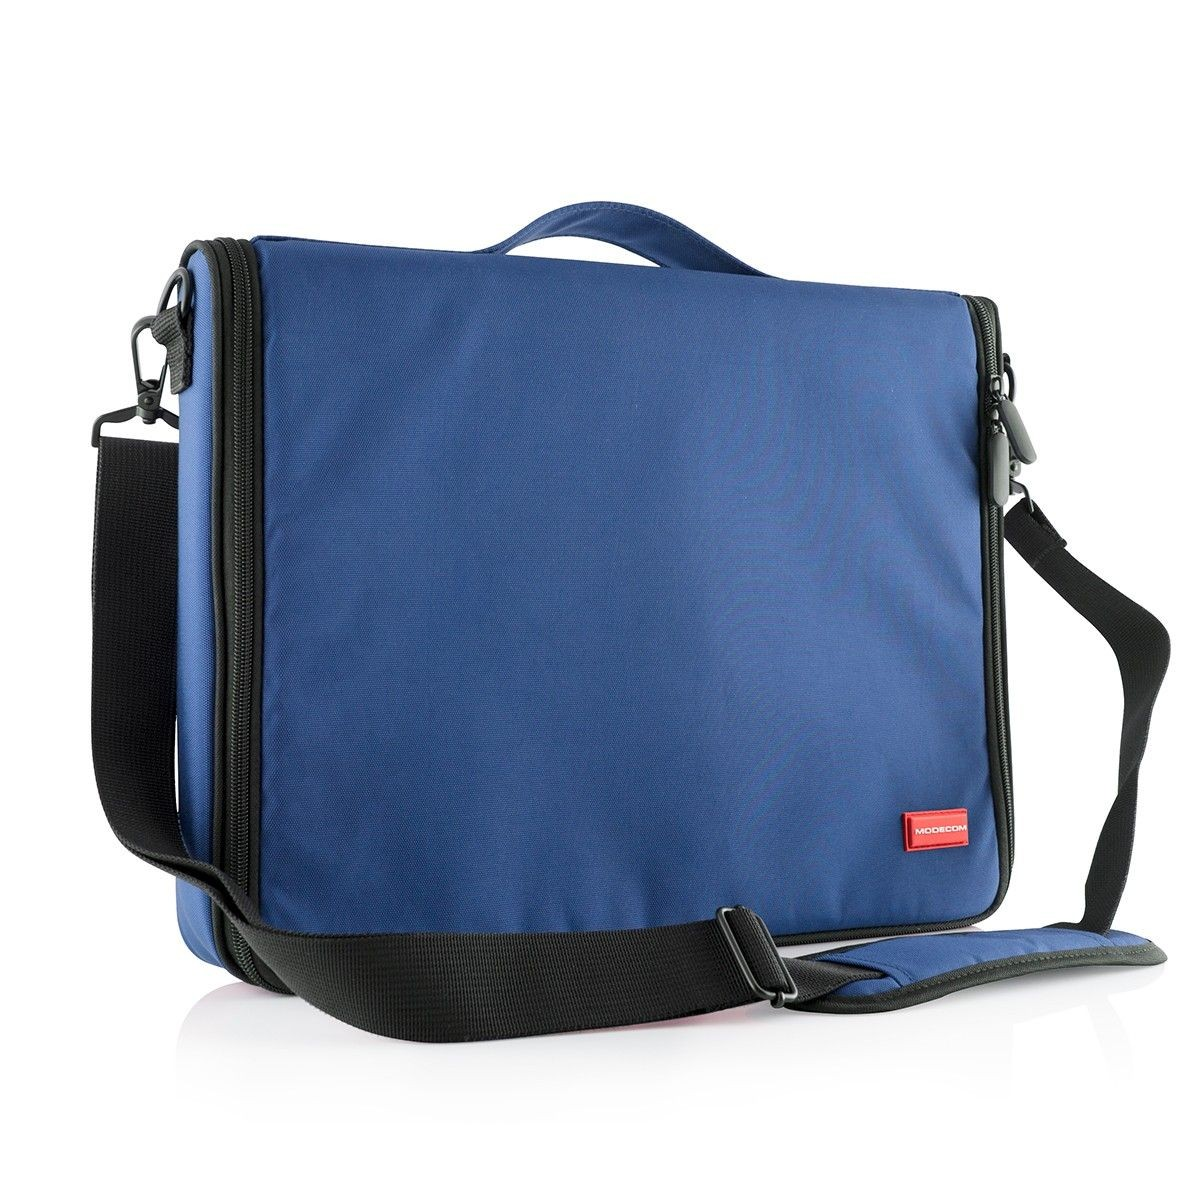 ModeCom Torba TORINO 15,6 do Laptopa 15,6'' Niebieska